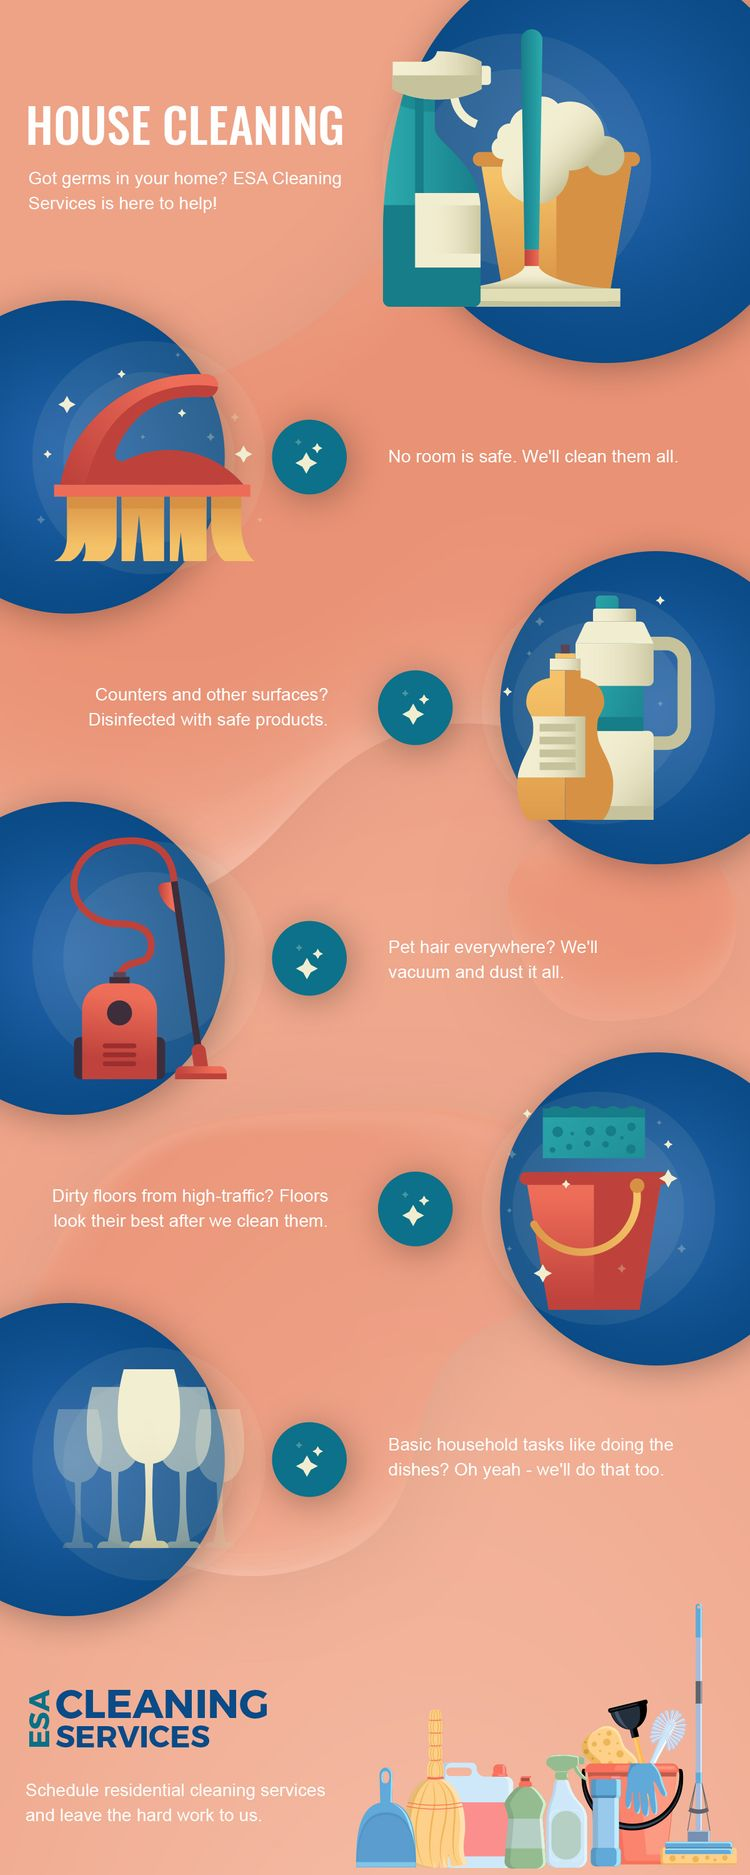 360-Cleaning-Services-infographic.jpg